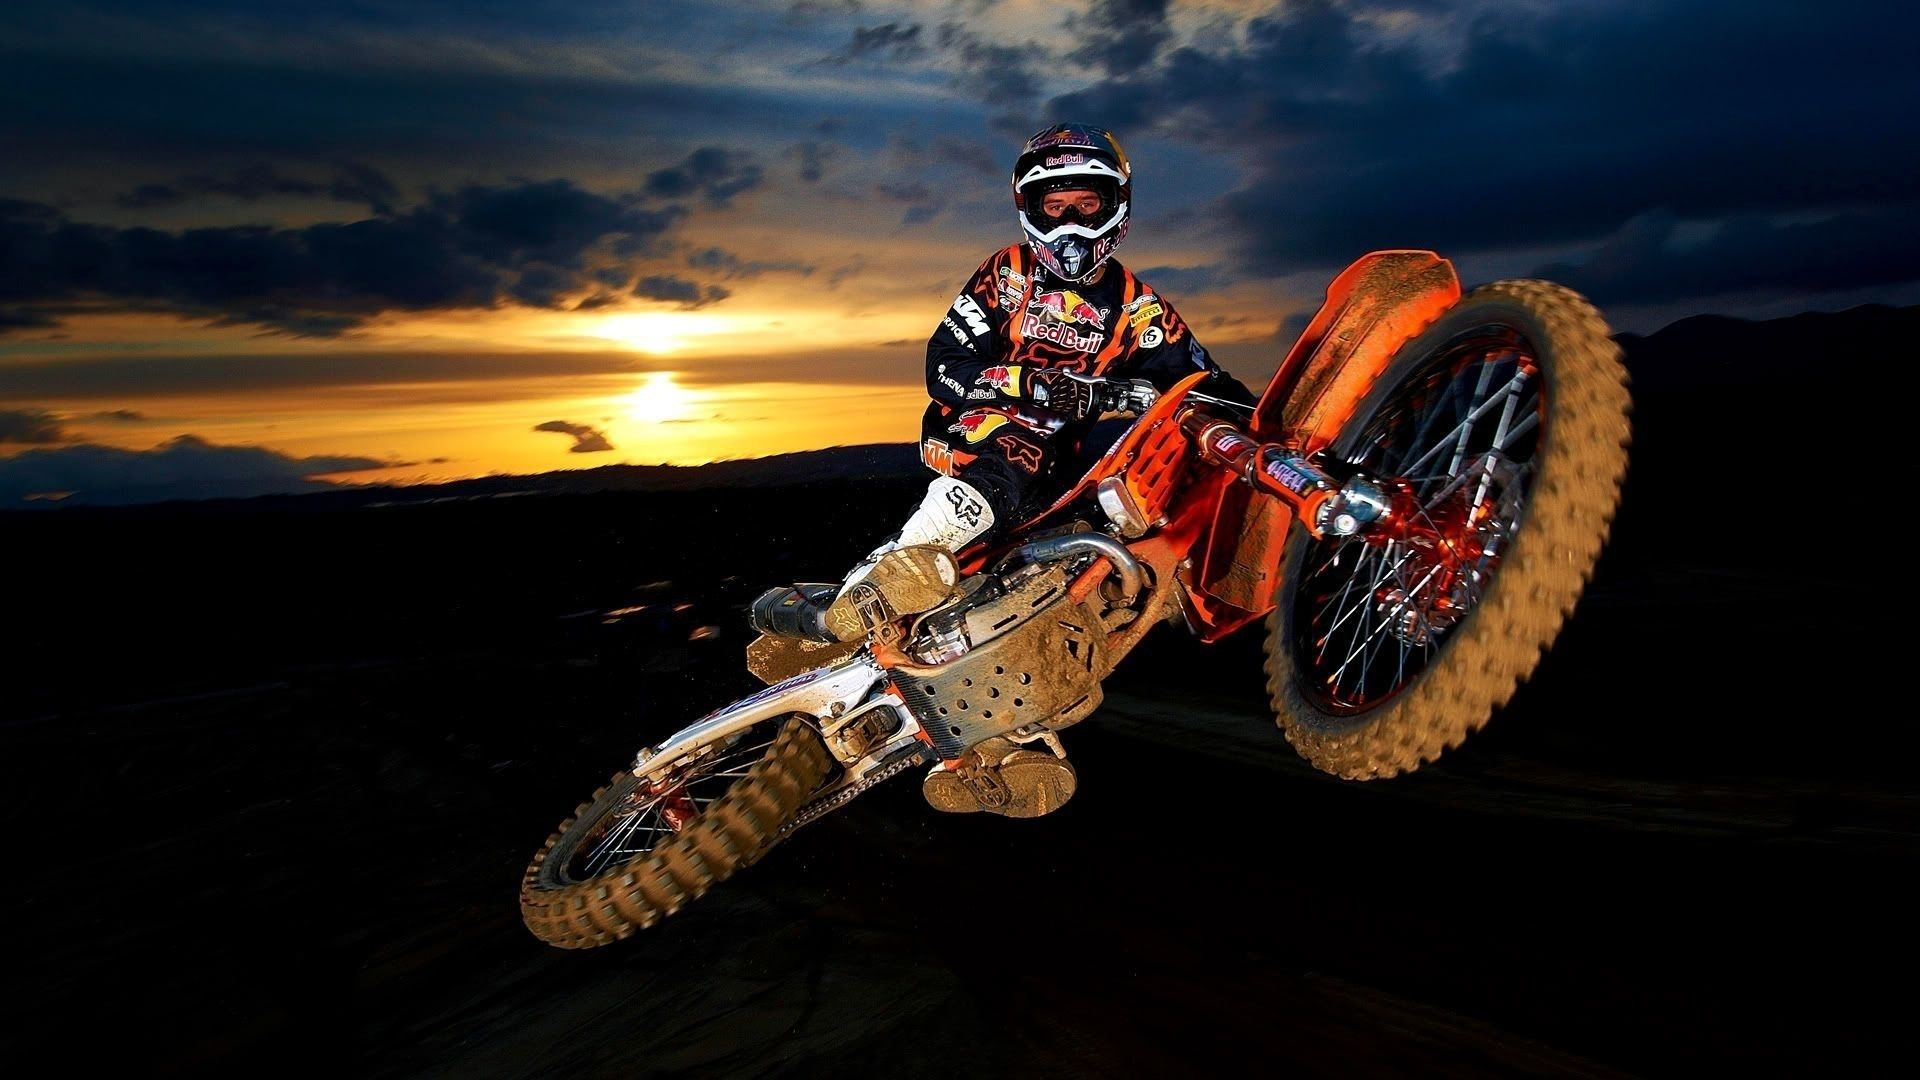 10 New Ktm Dirt Bike Wallpapers Full Hd 1080p For Pc: 10 New Ktm Dirt Bike Wallpaper FULL HD 1920×1080 For PC